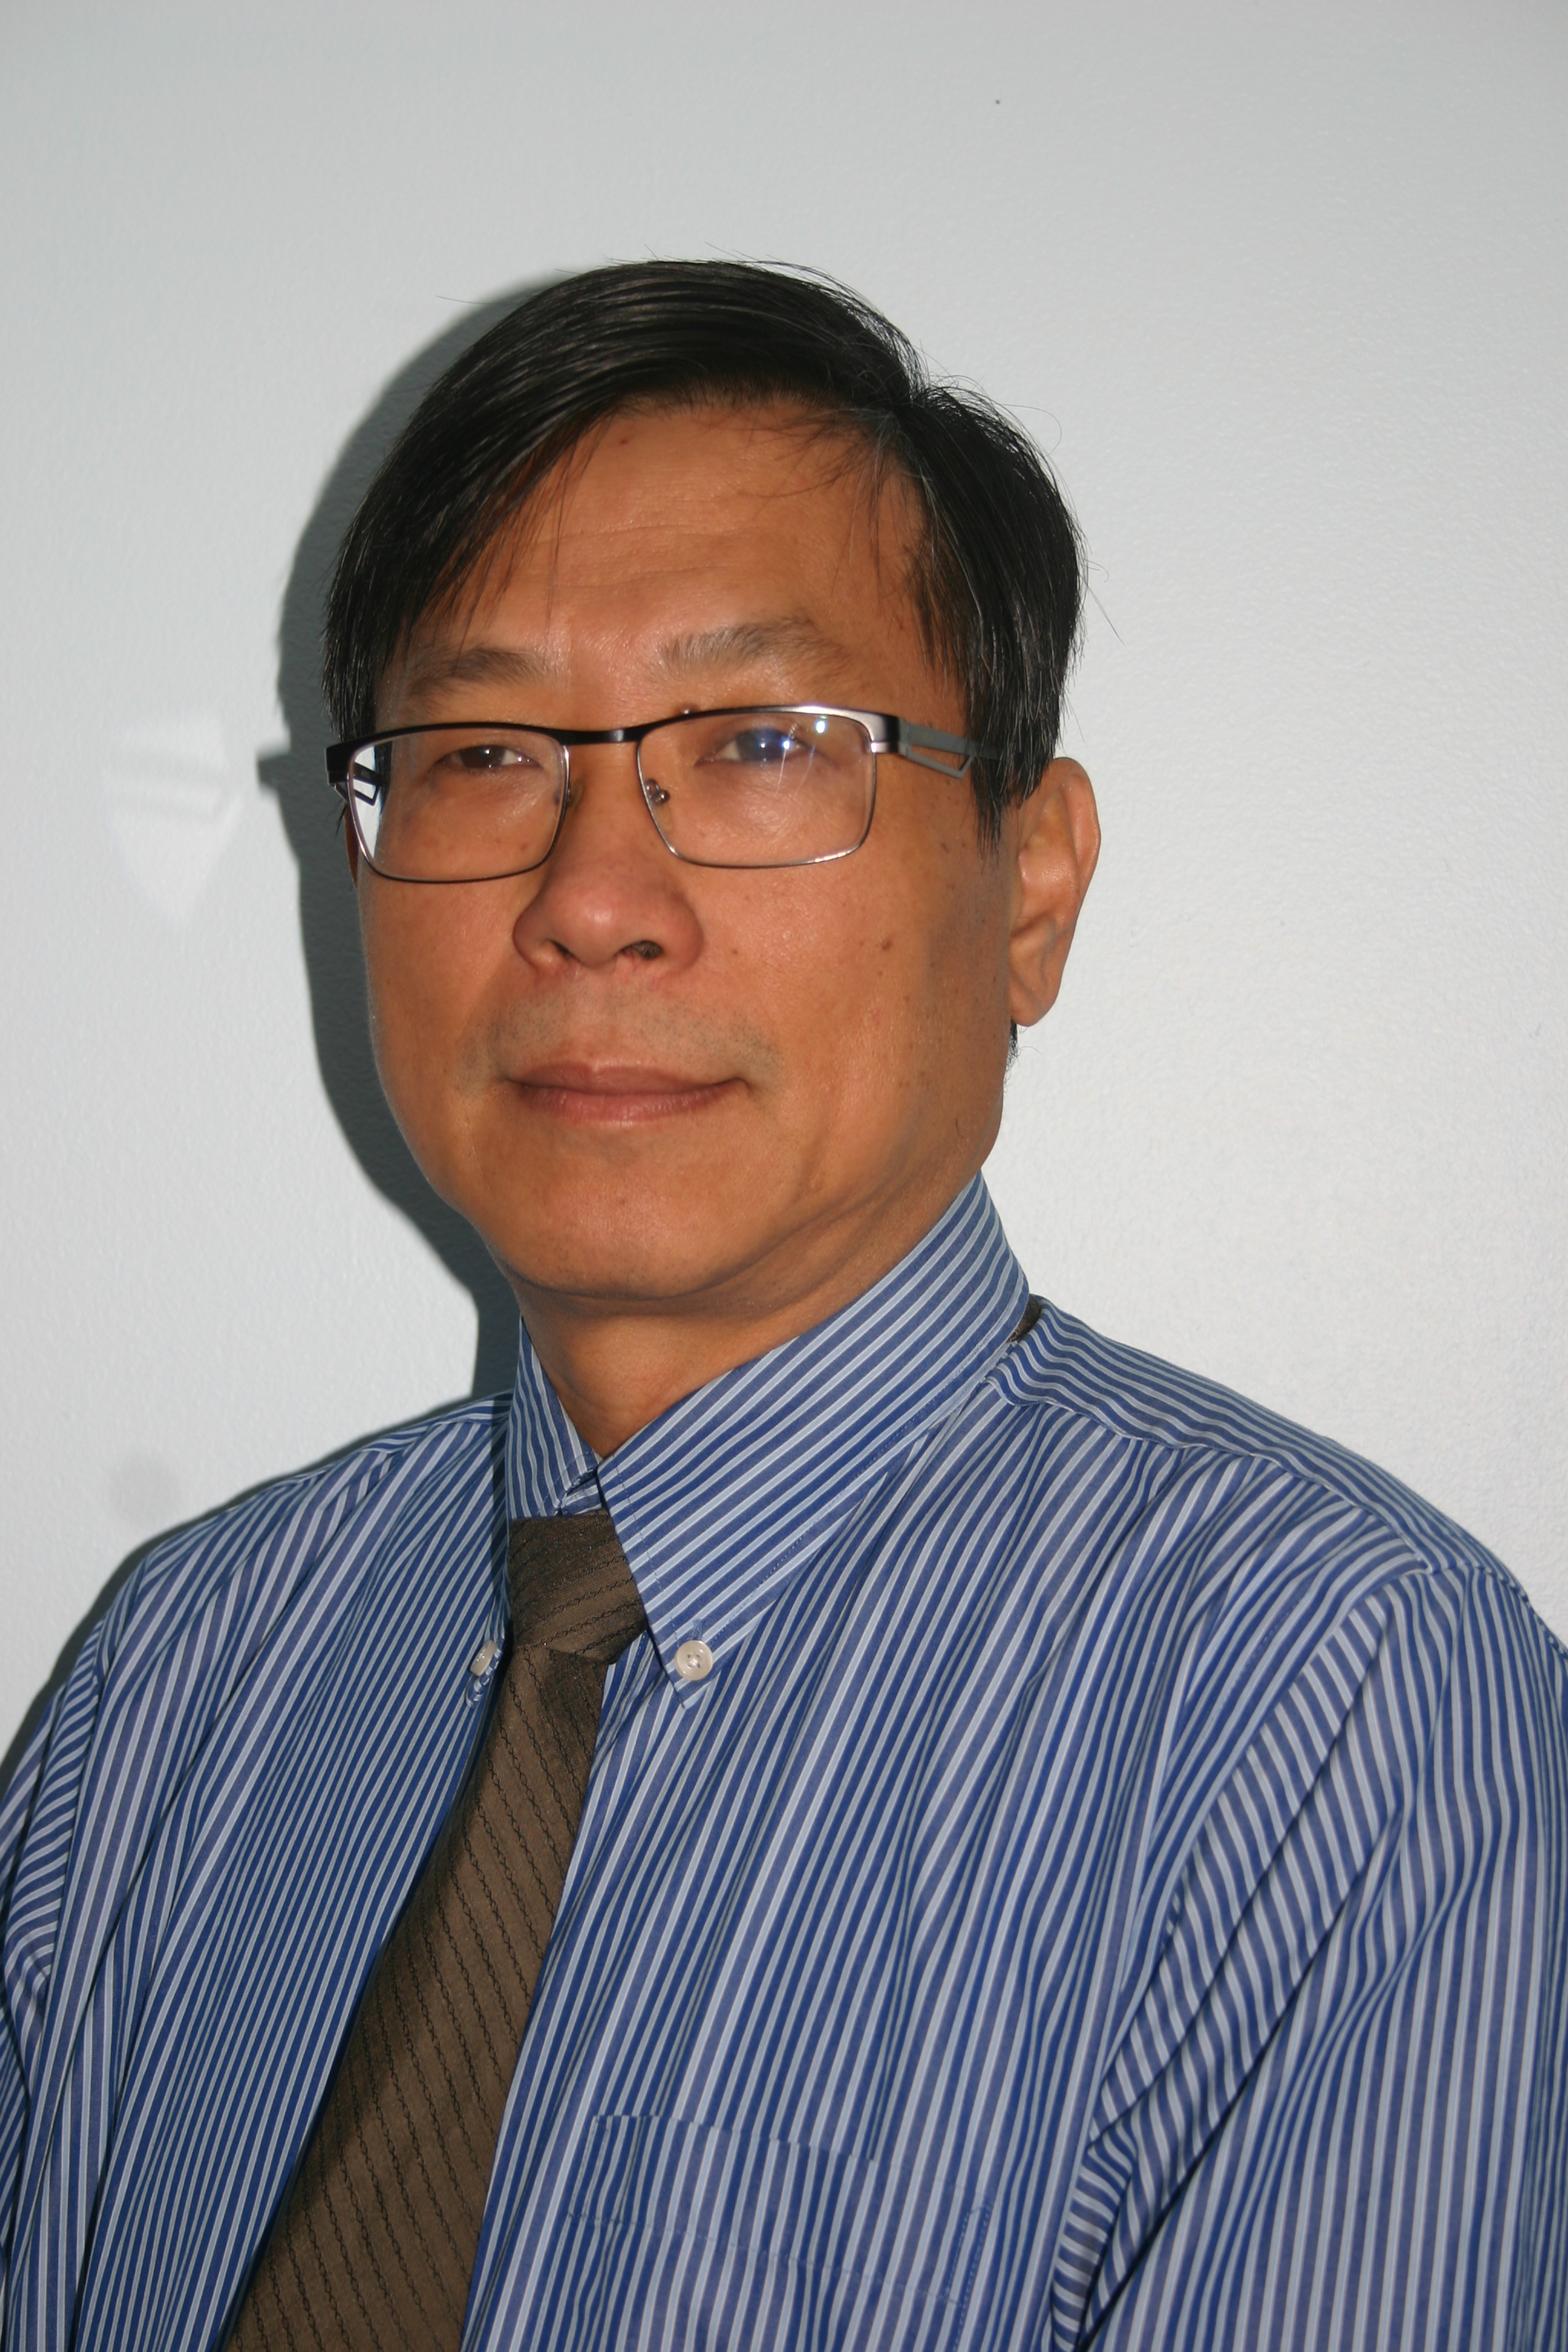 Walter Wong, Real Estate Agent - Manhasset, NY - Coldwell Banker Residential Brokerage - f77a3ee3b3e608d8-148095